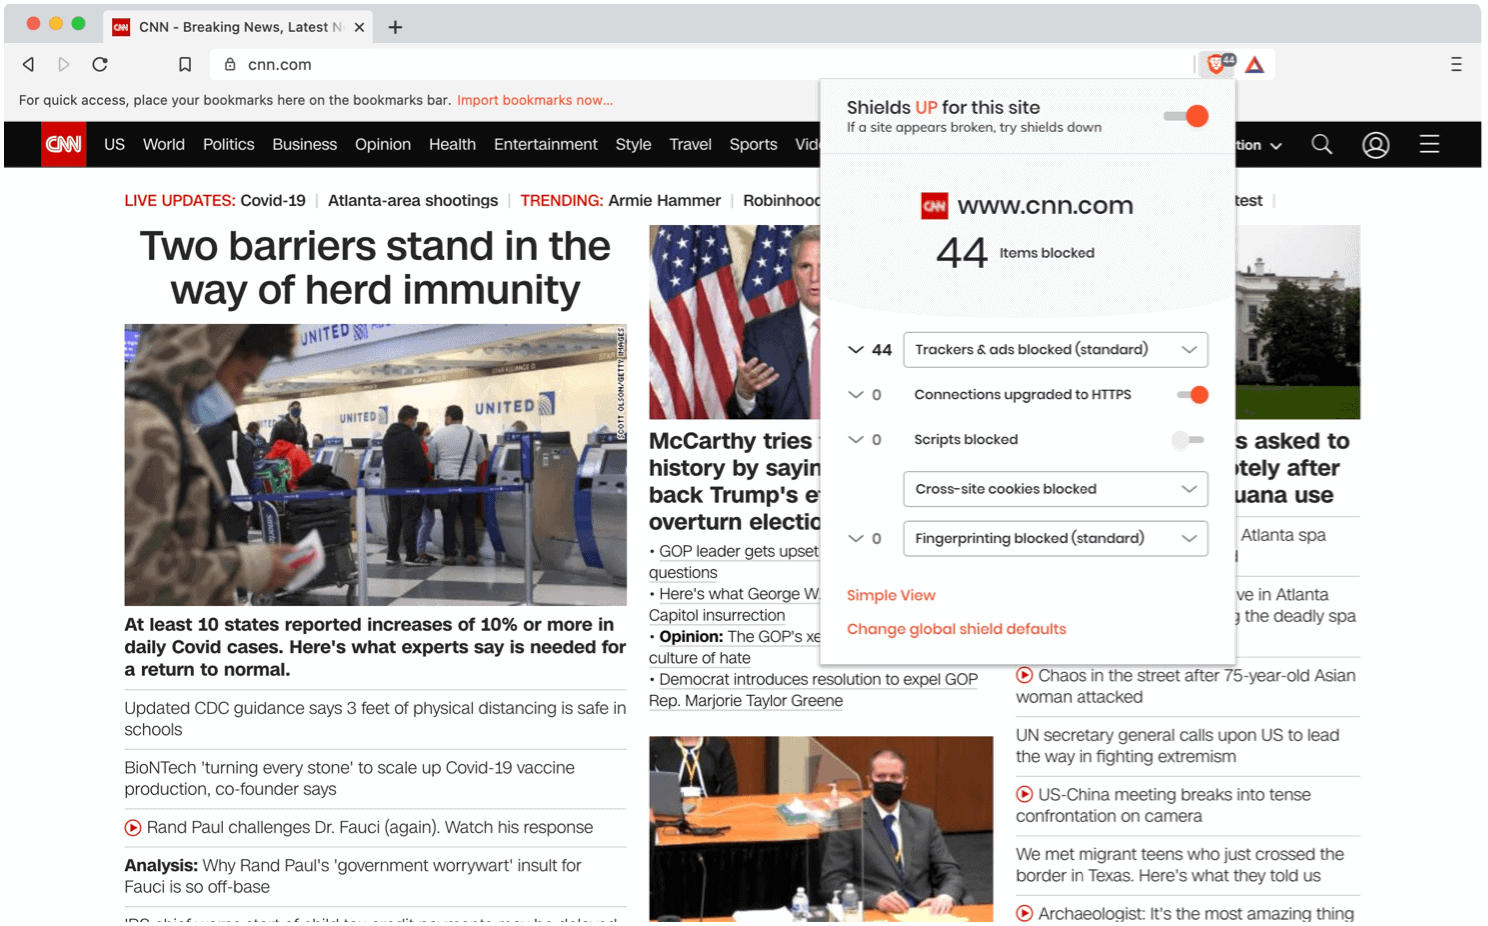 CNN sample website